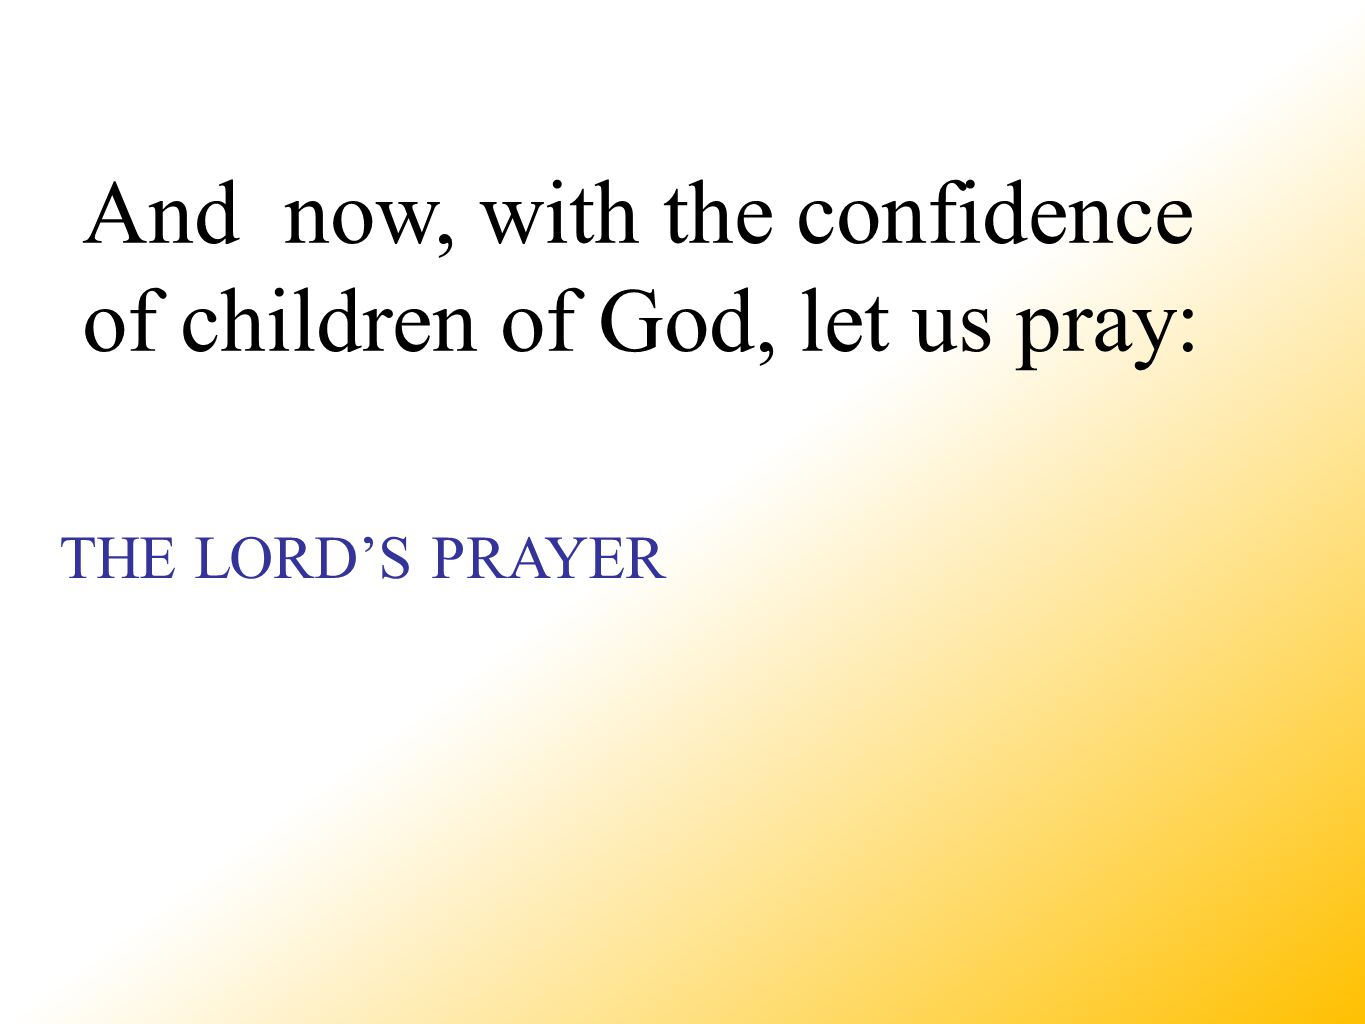 THE LORD'S PRAYER And now, with the confidence of children of God, let us pray: